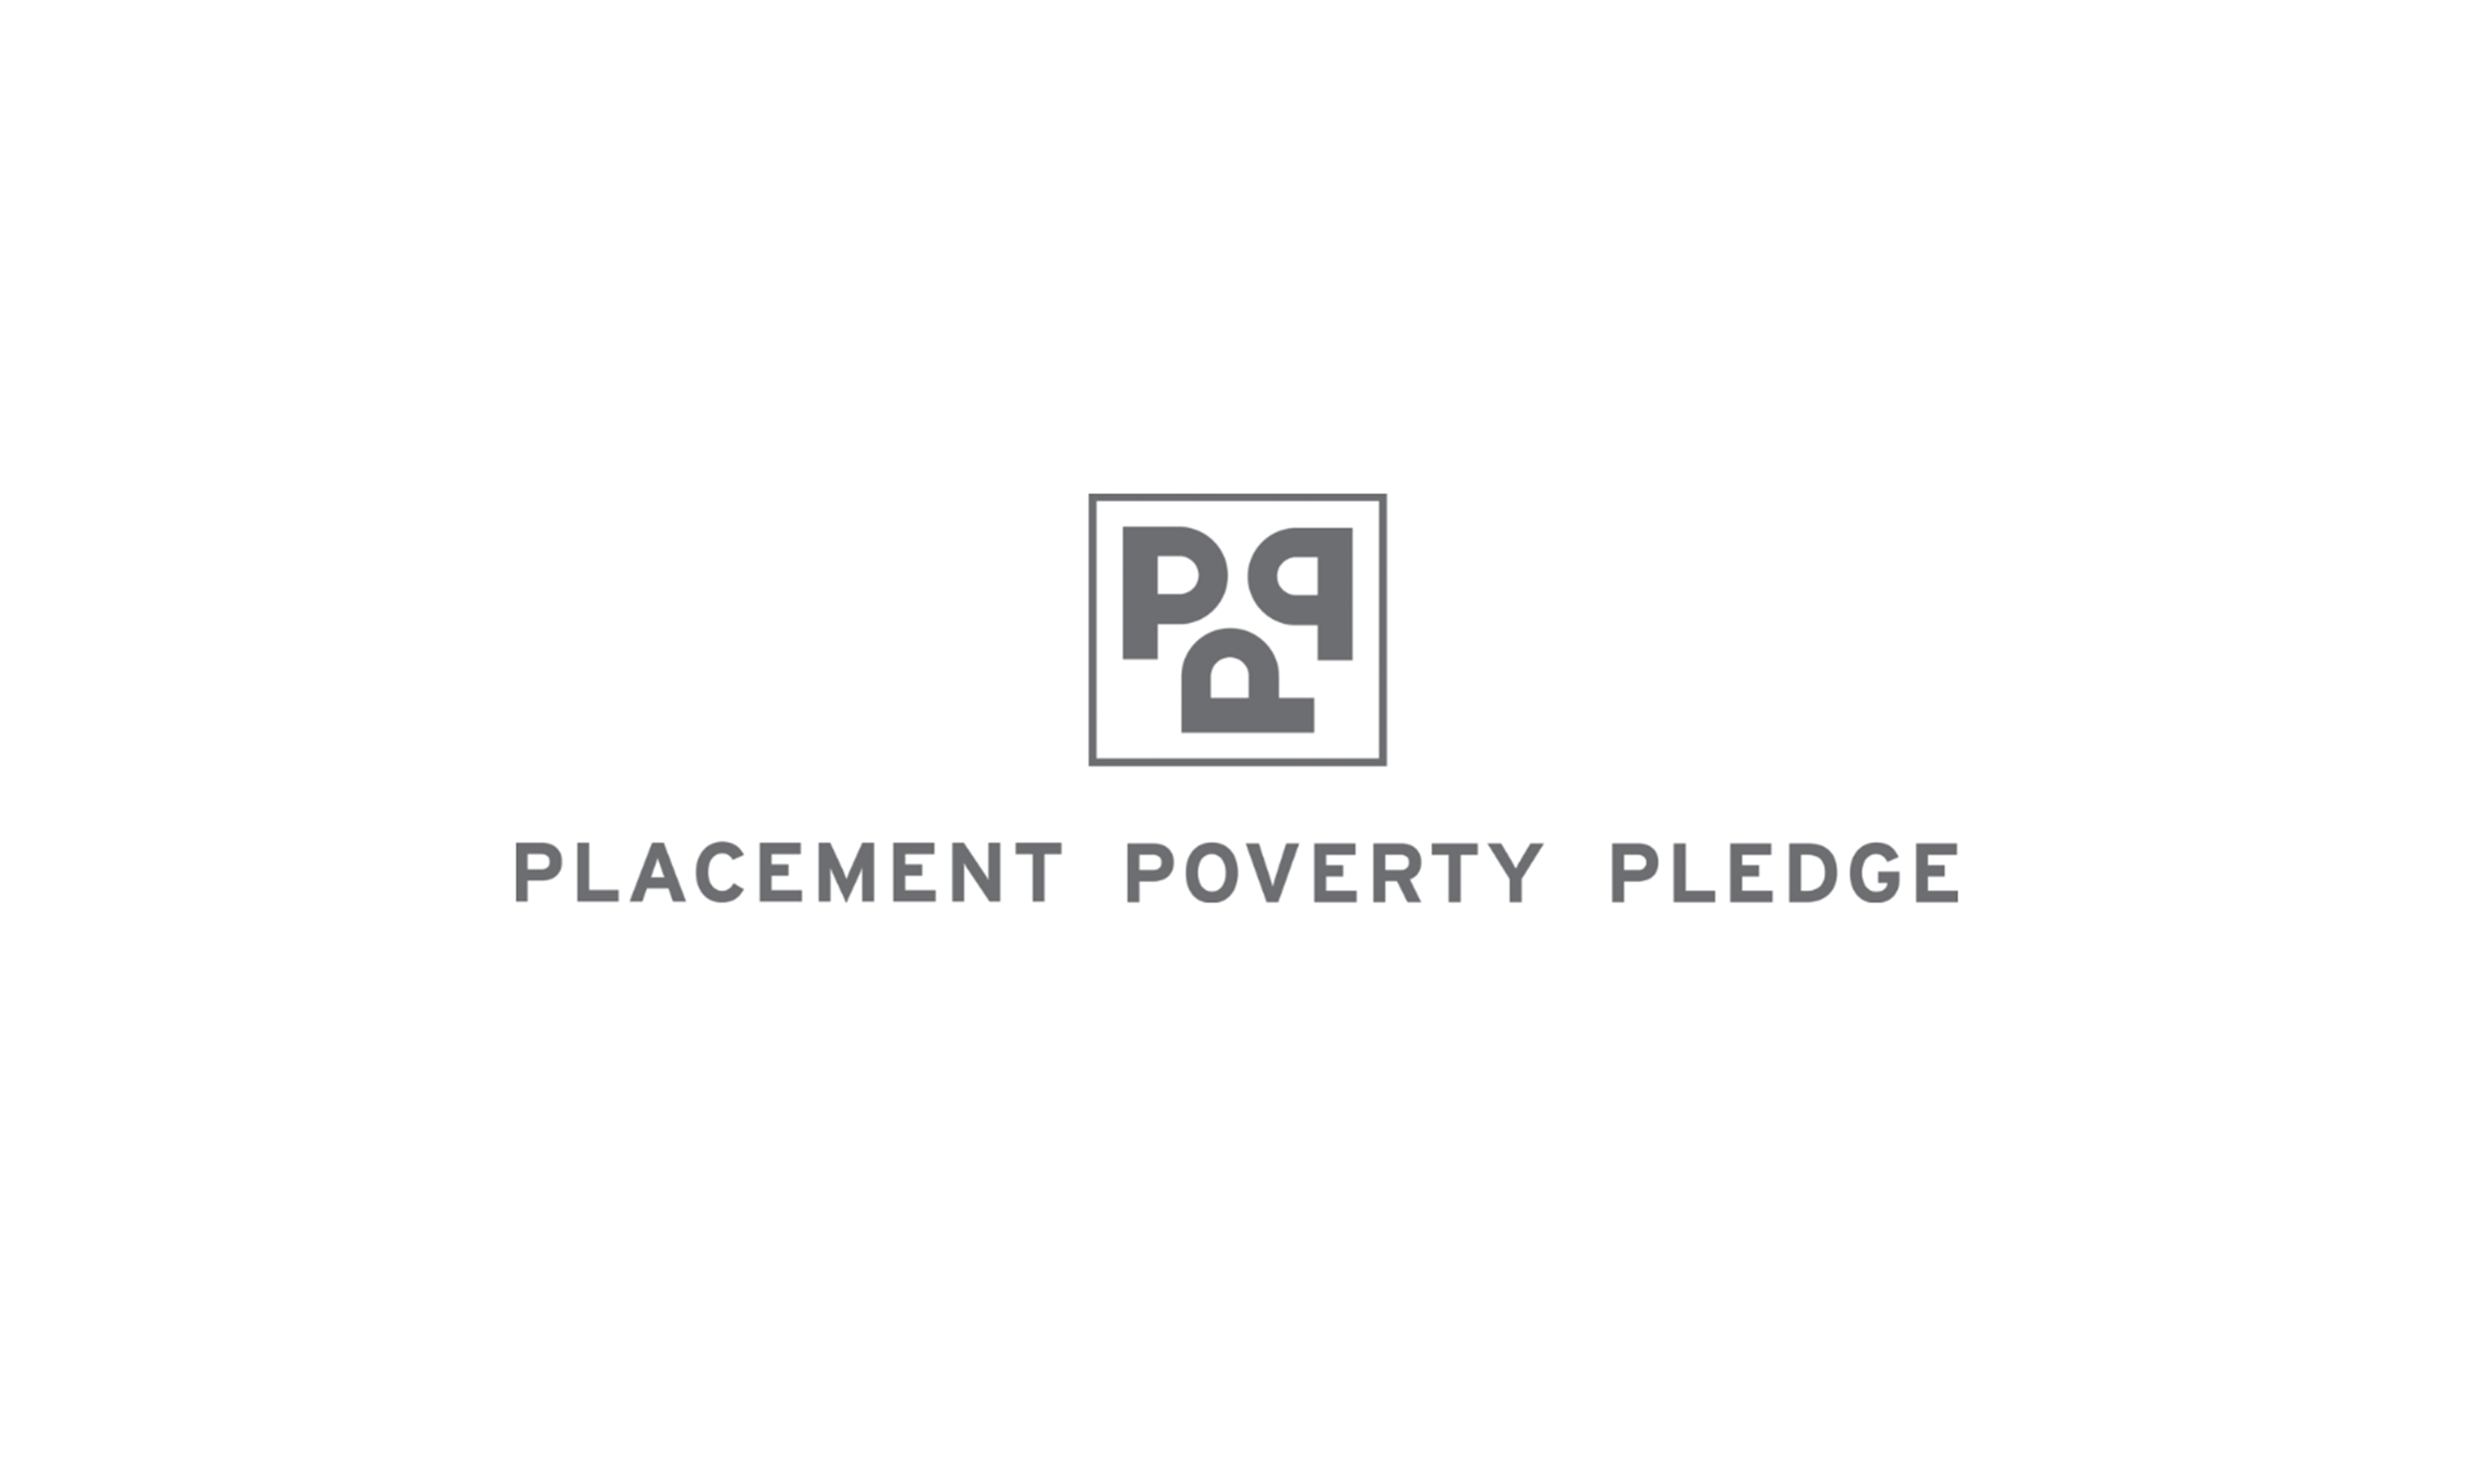 Neon sign-up to placement poverty pledge